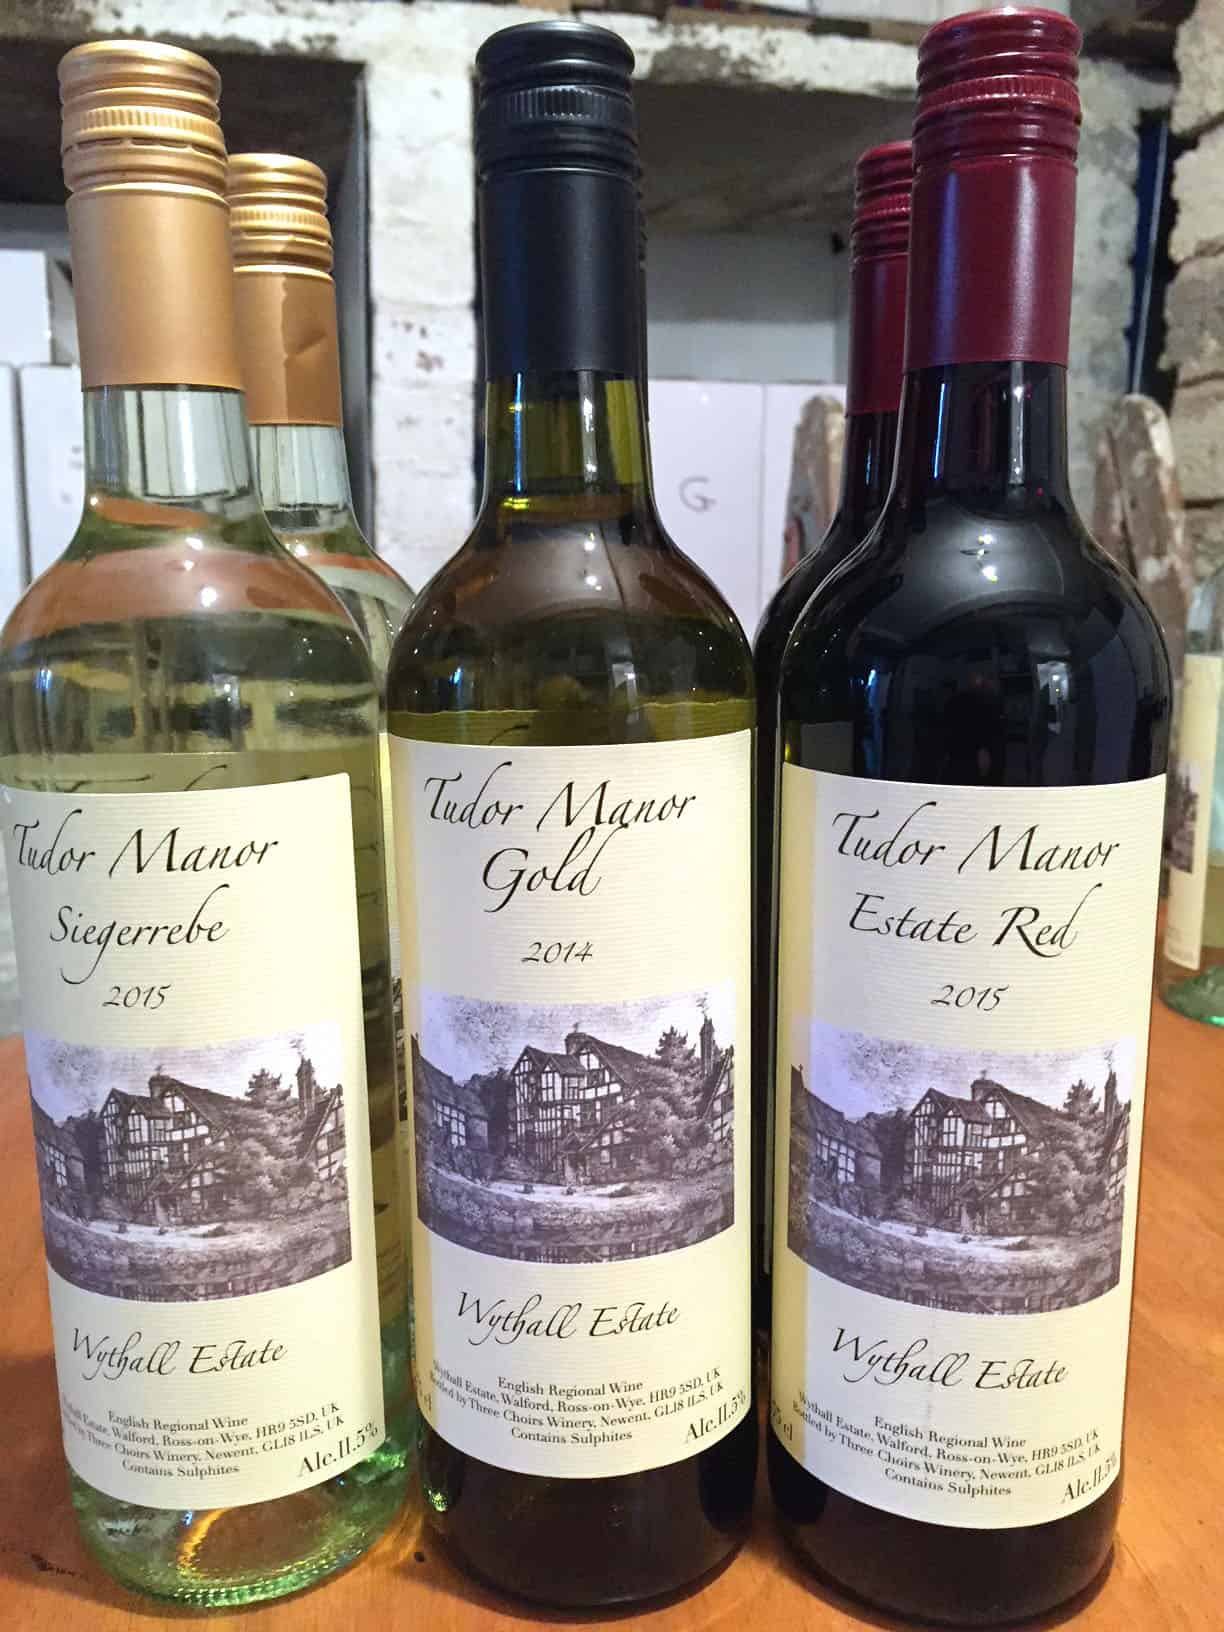 Tudor Manor wines from Wythall Vineyards, Ross-on-Wye England